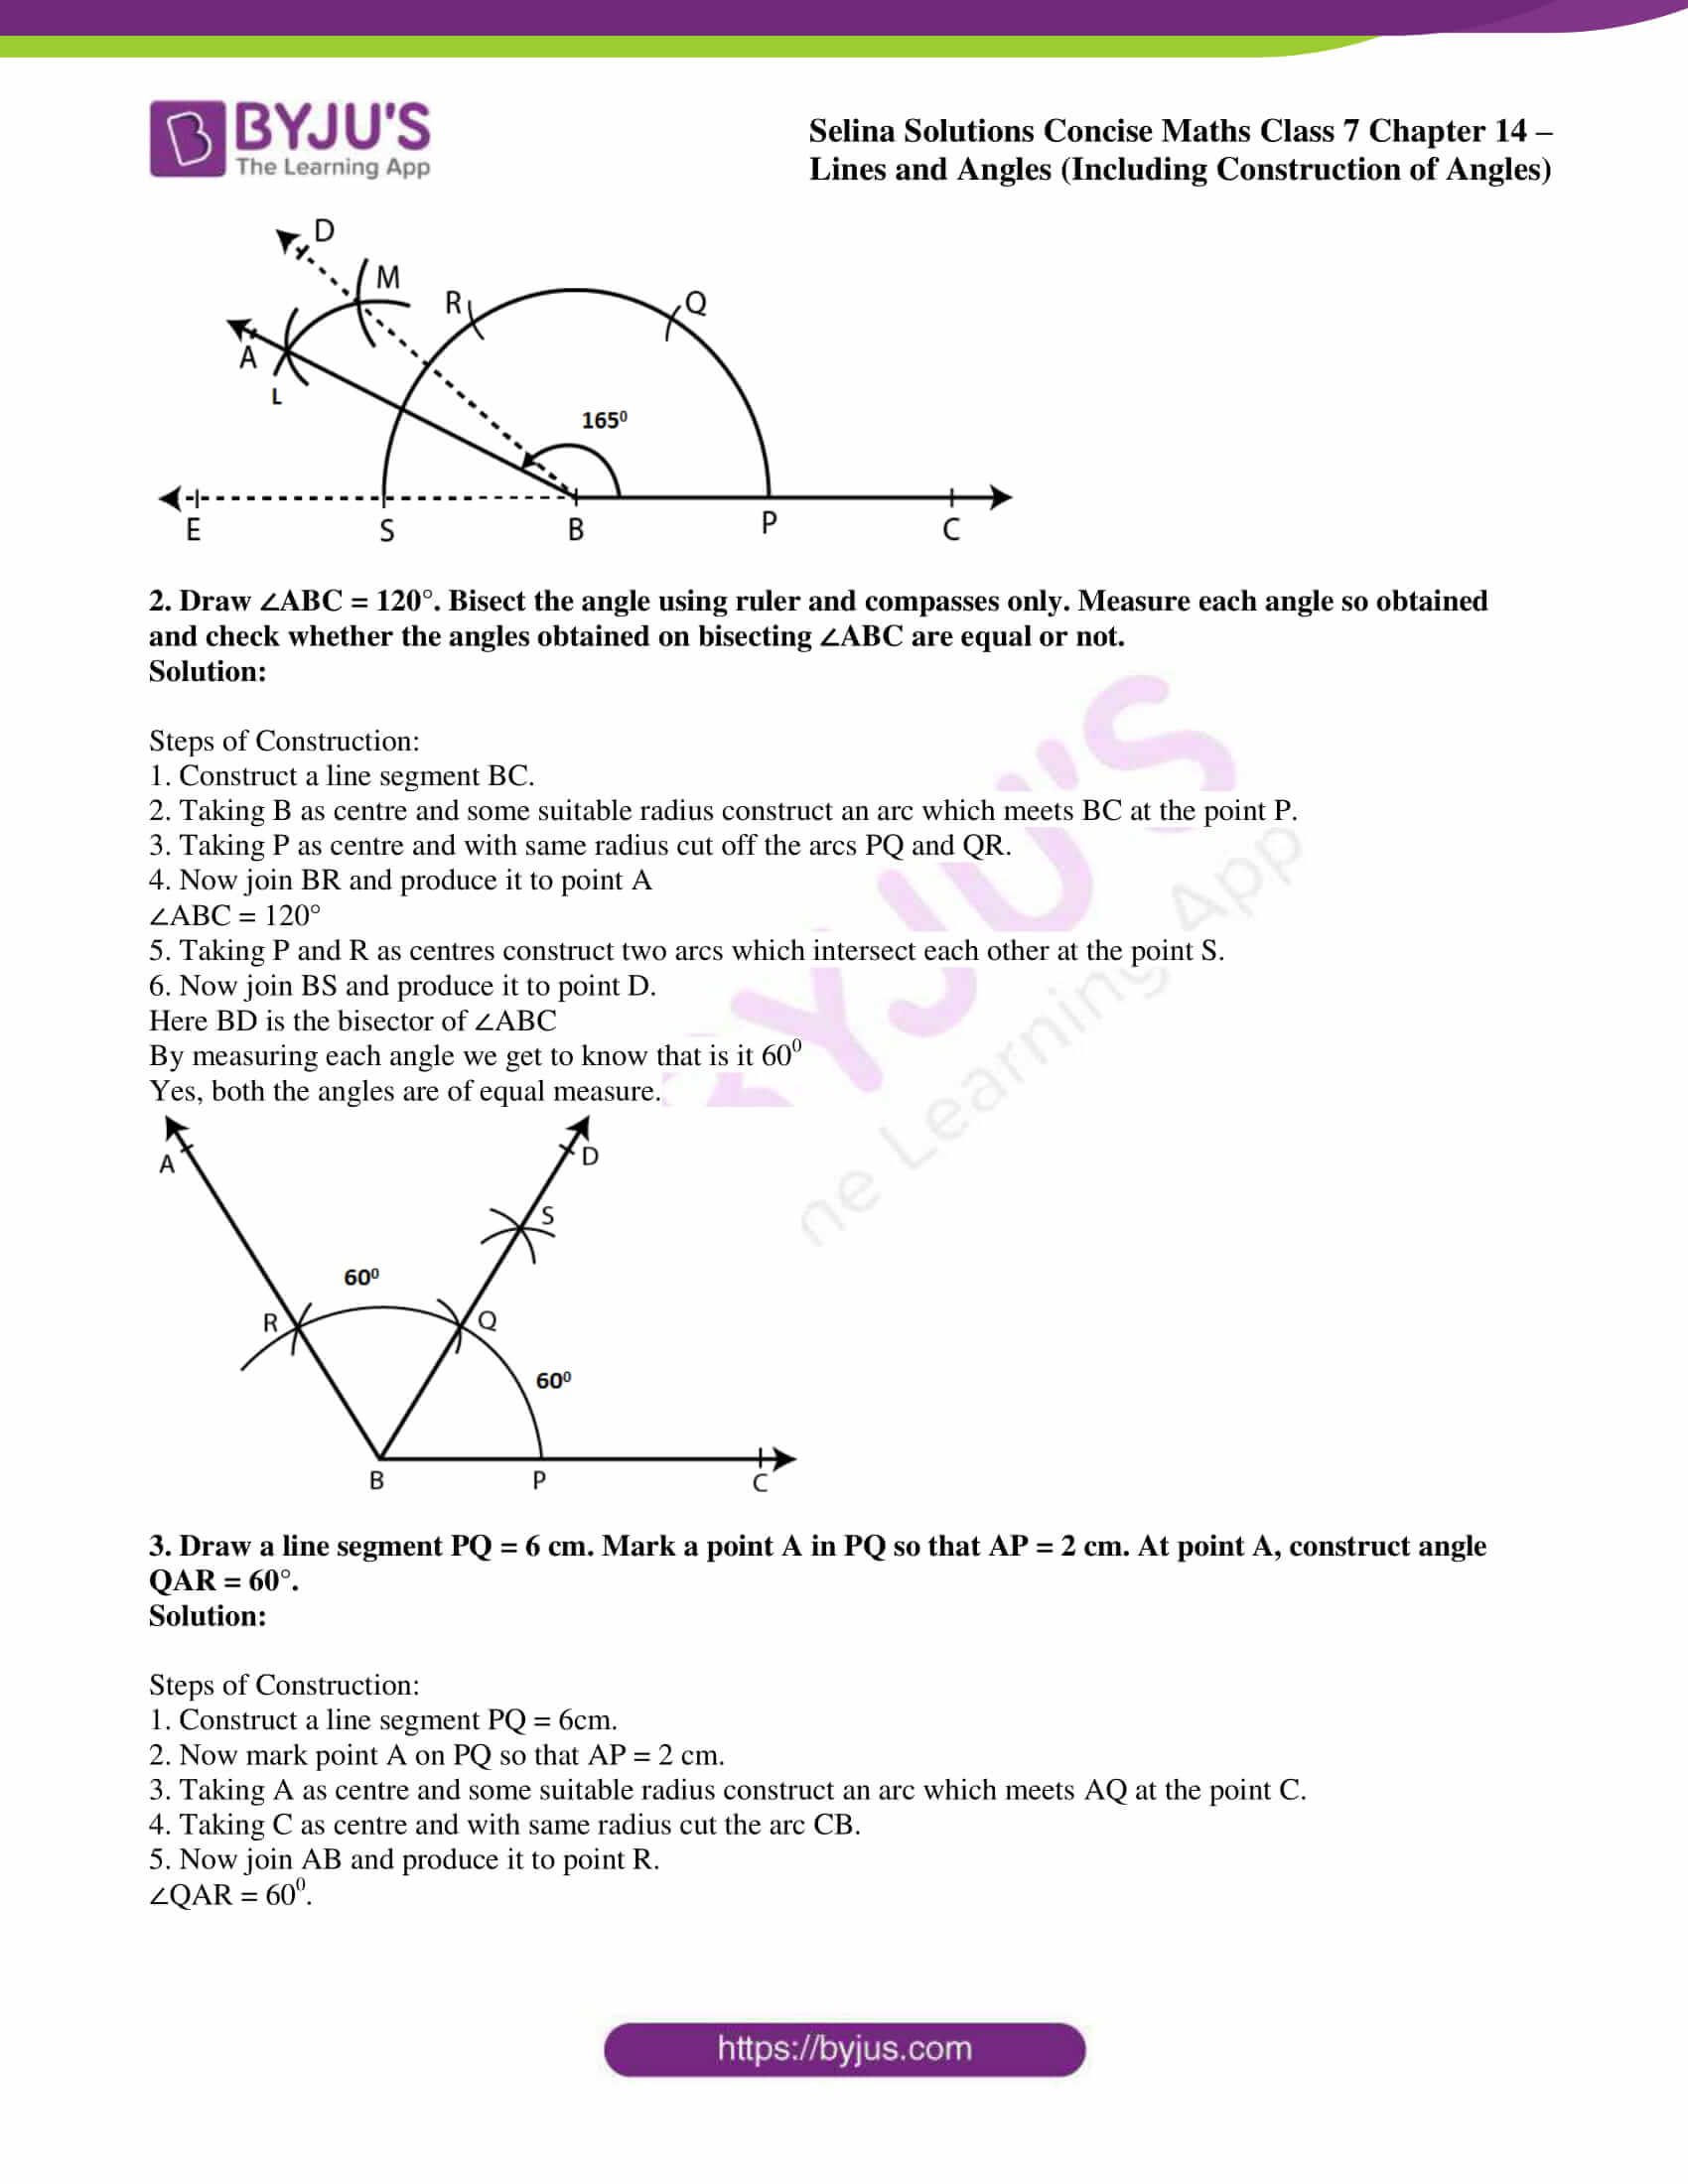 selina solution concise maths class 7 ch 14c 3